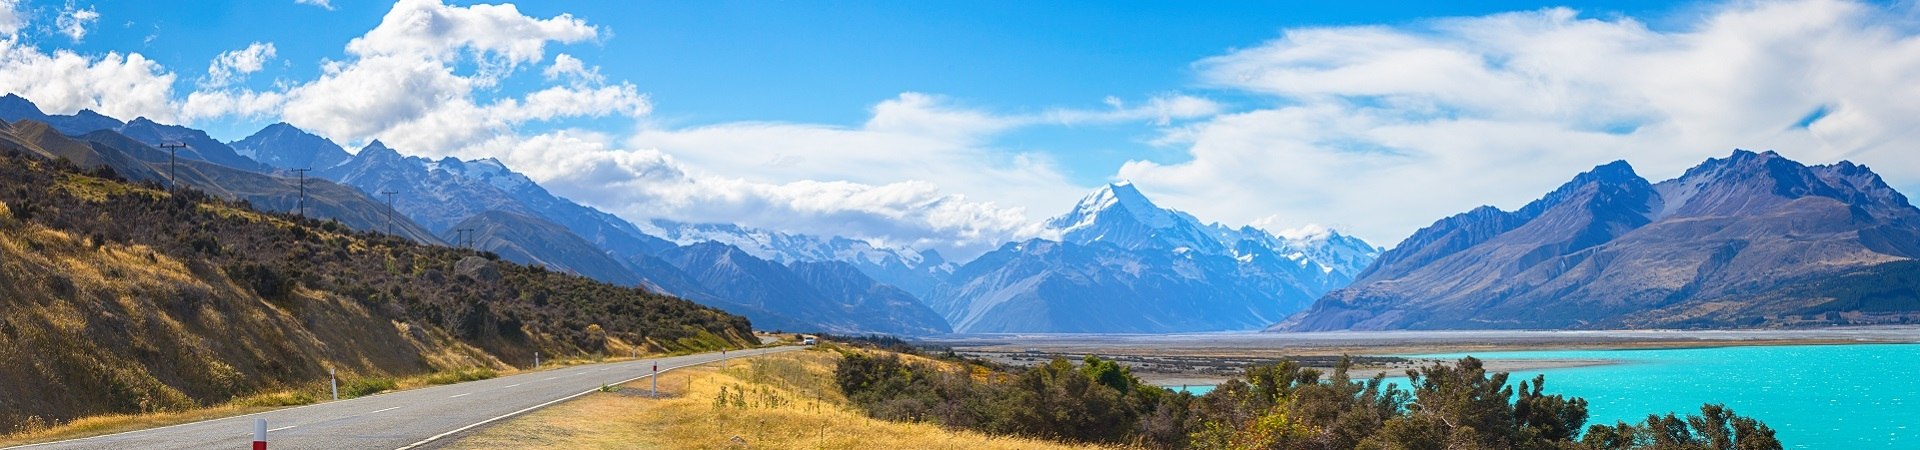 Road alongside a lake with Mt Cook in the distance